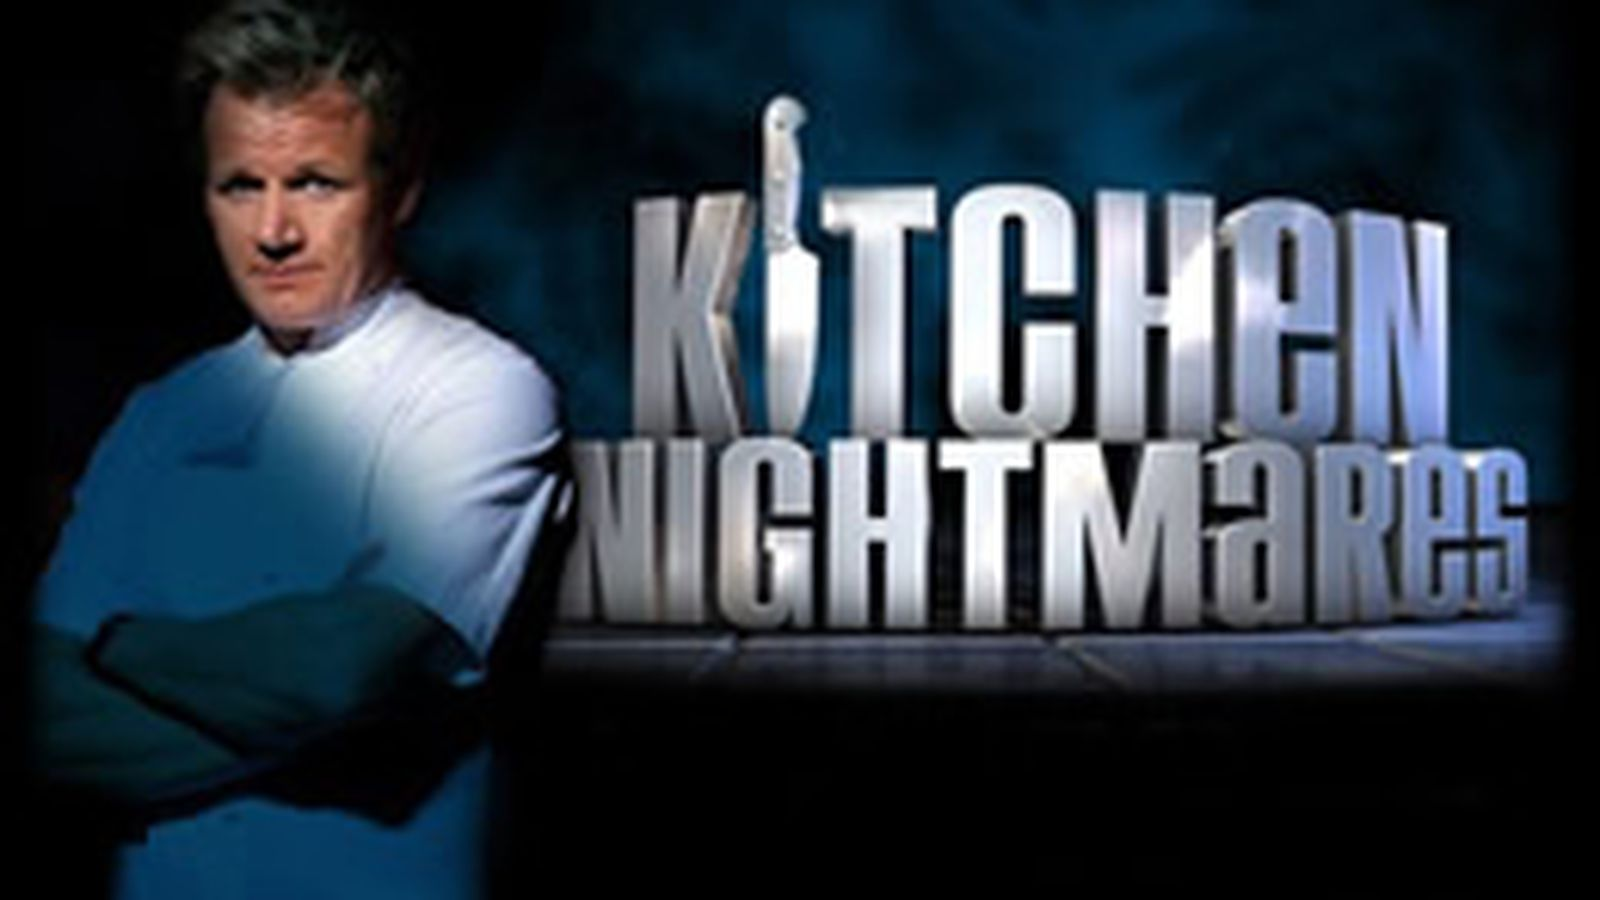 Gordon ramsay 39 s kitchen nightmares casting now eater for Kitchen nightmares uk